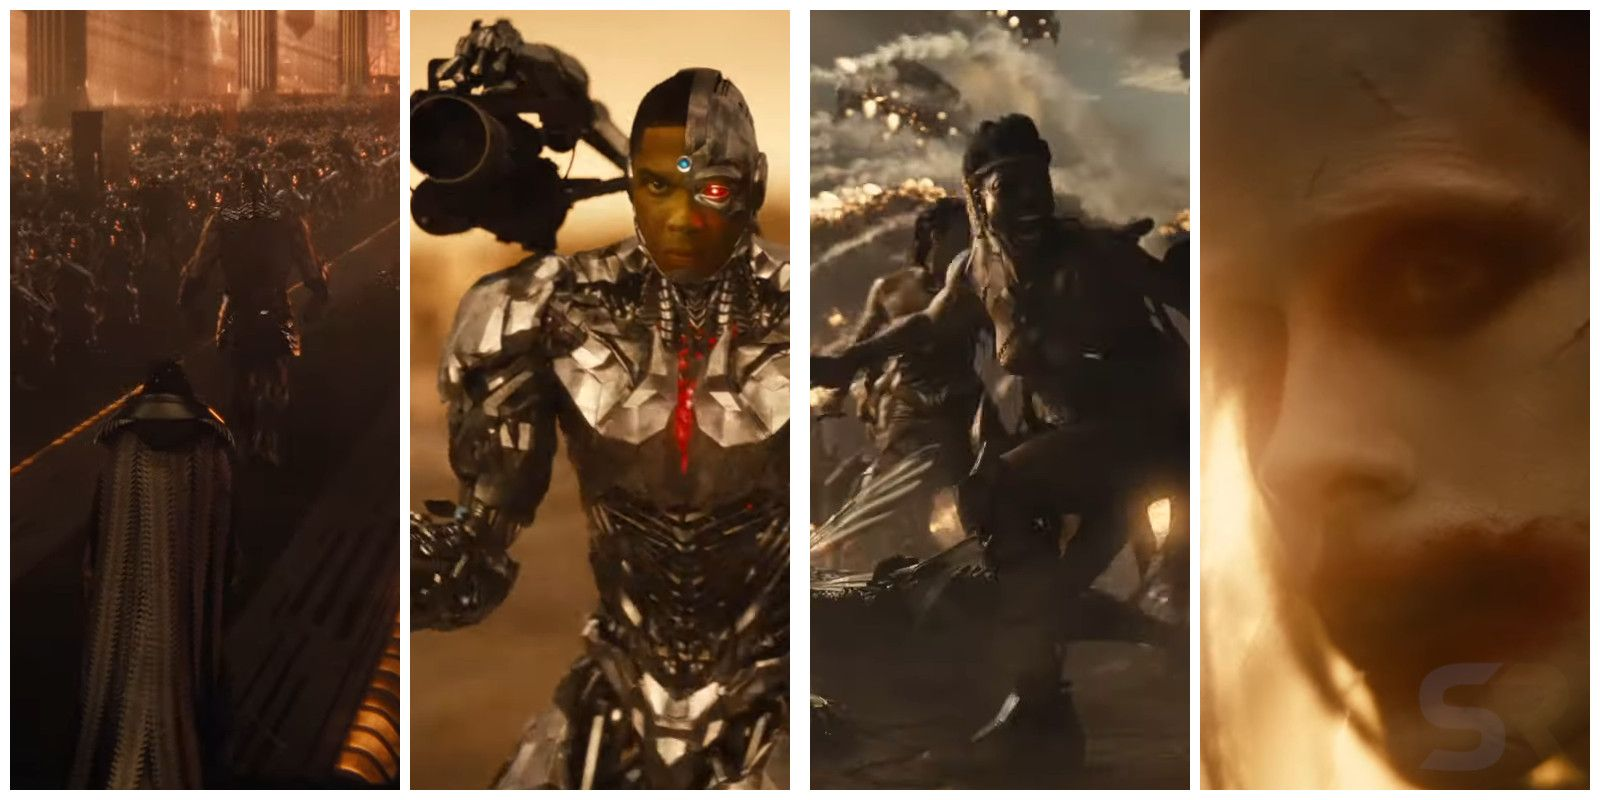 Justice League: Every New Scene Shown In Snyder Cut's ...